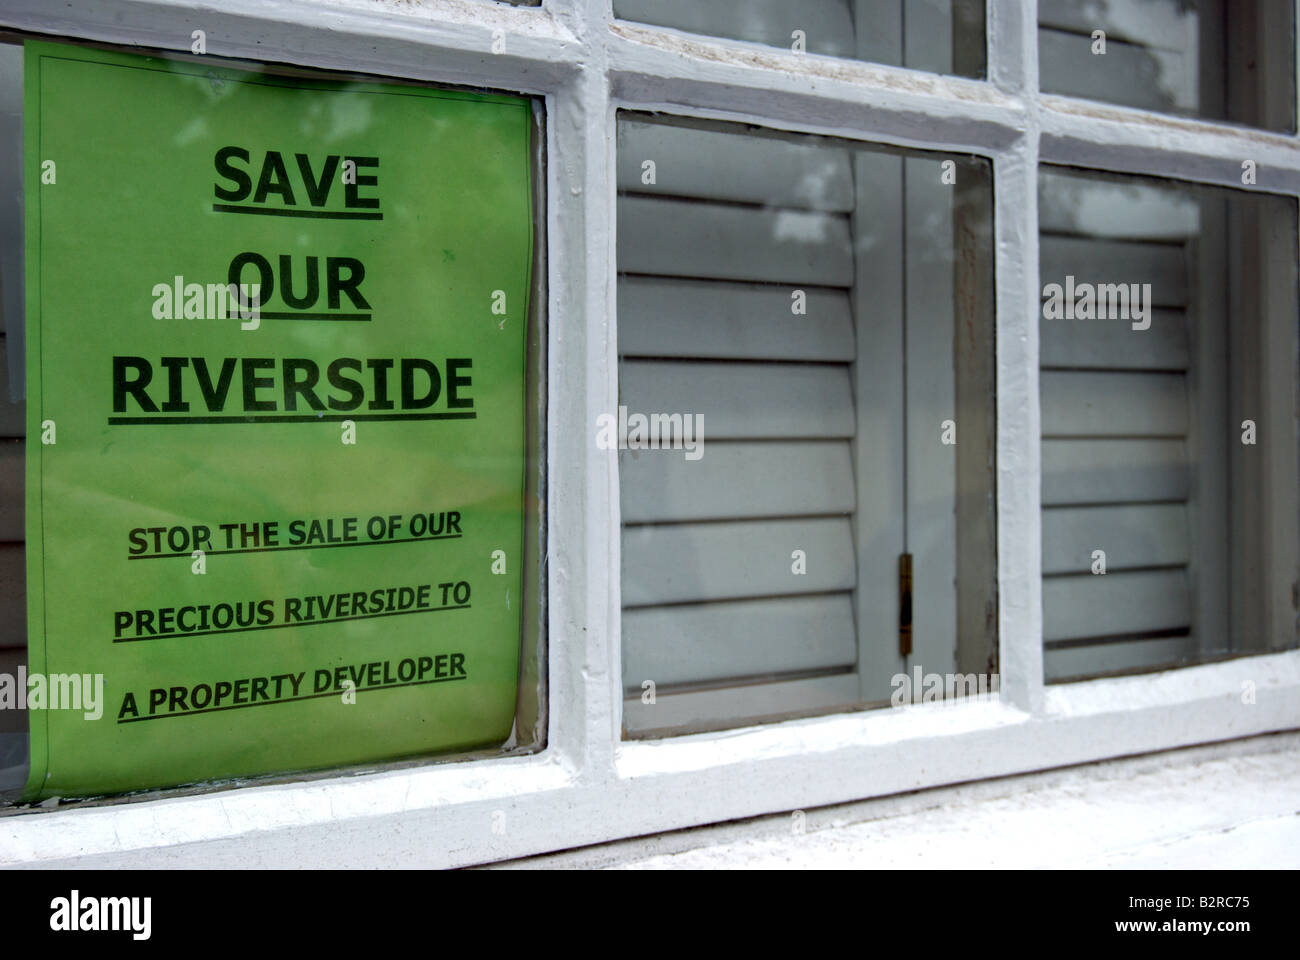 green sign with black text on a residential window in twickenham, england, opposing the dsale of riverside land Stock Photo